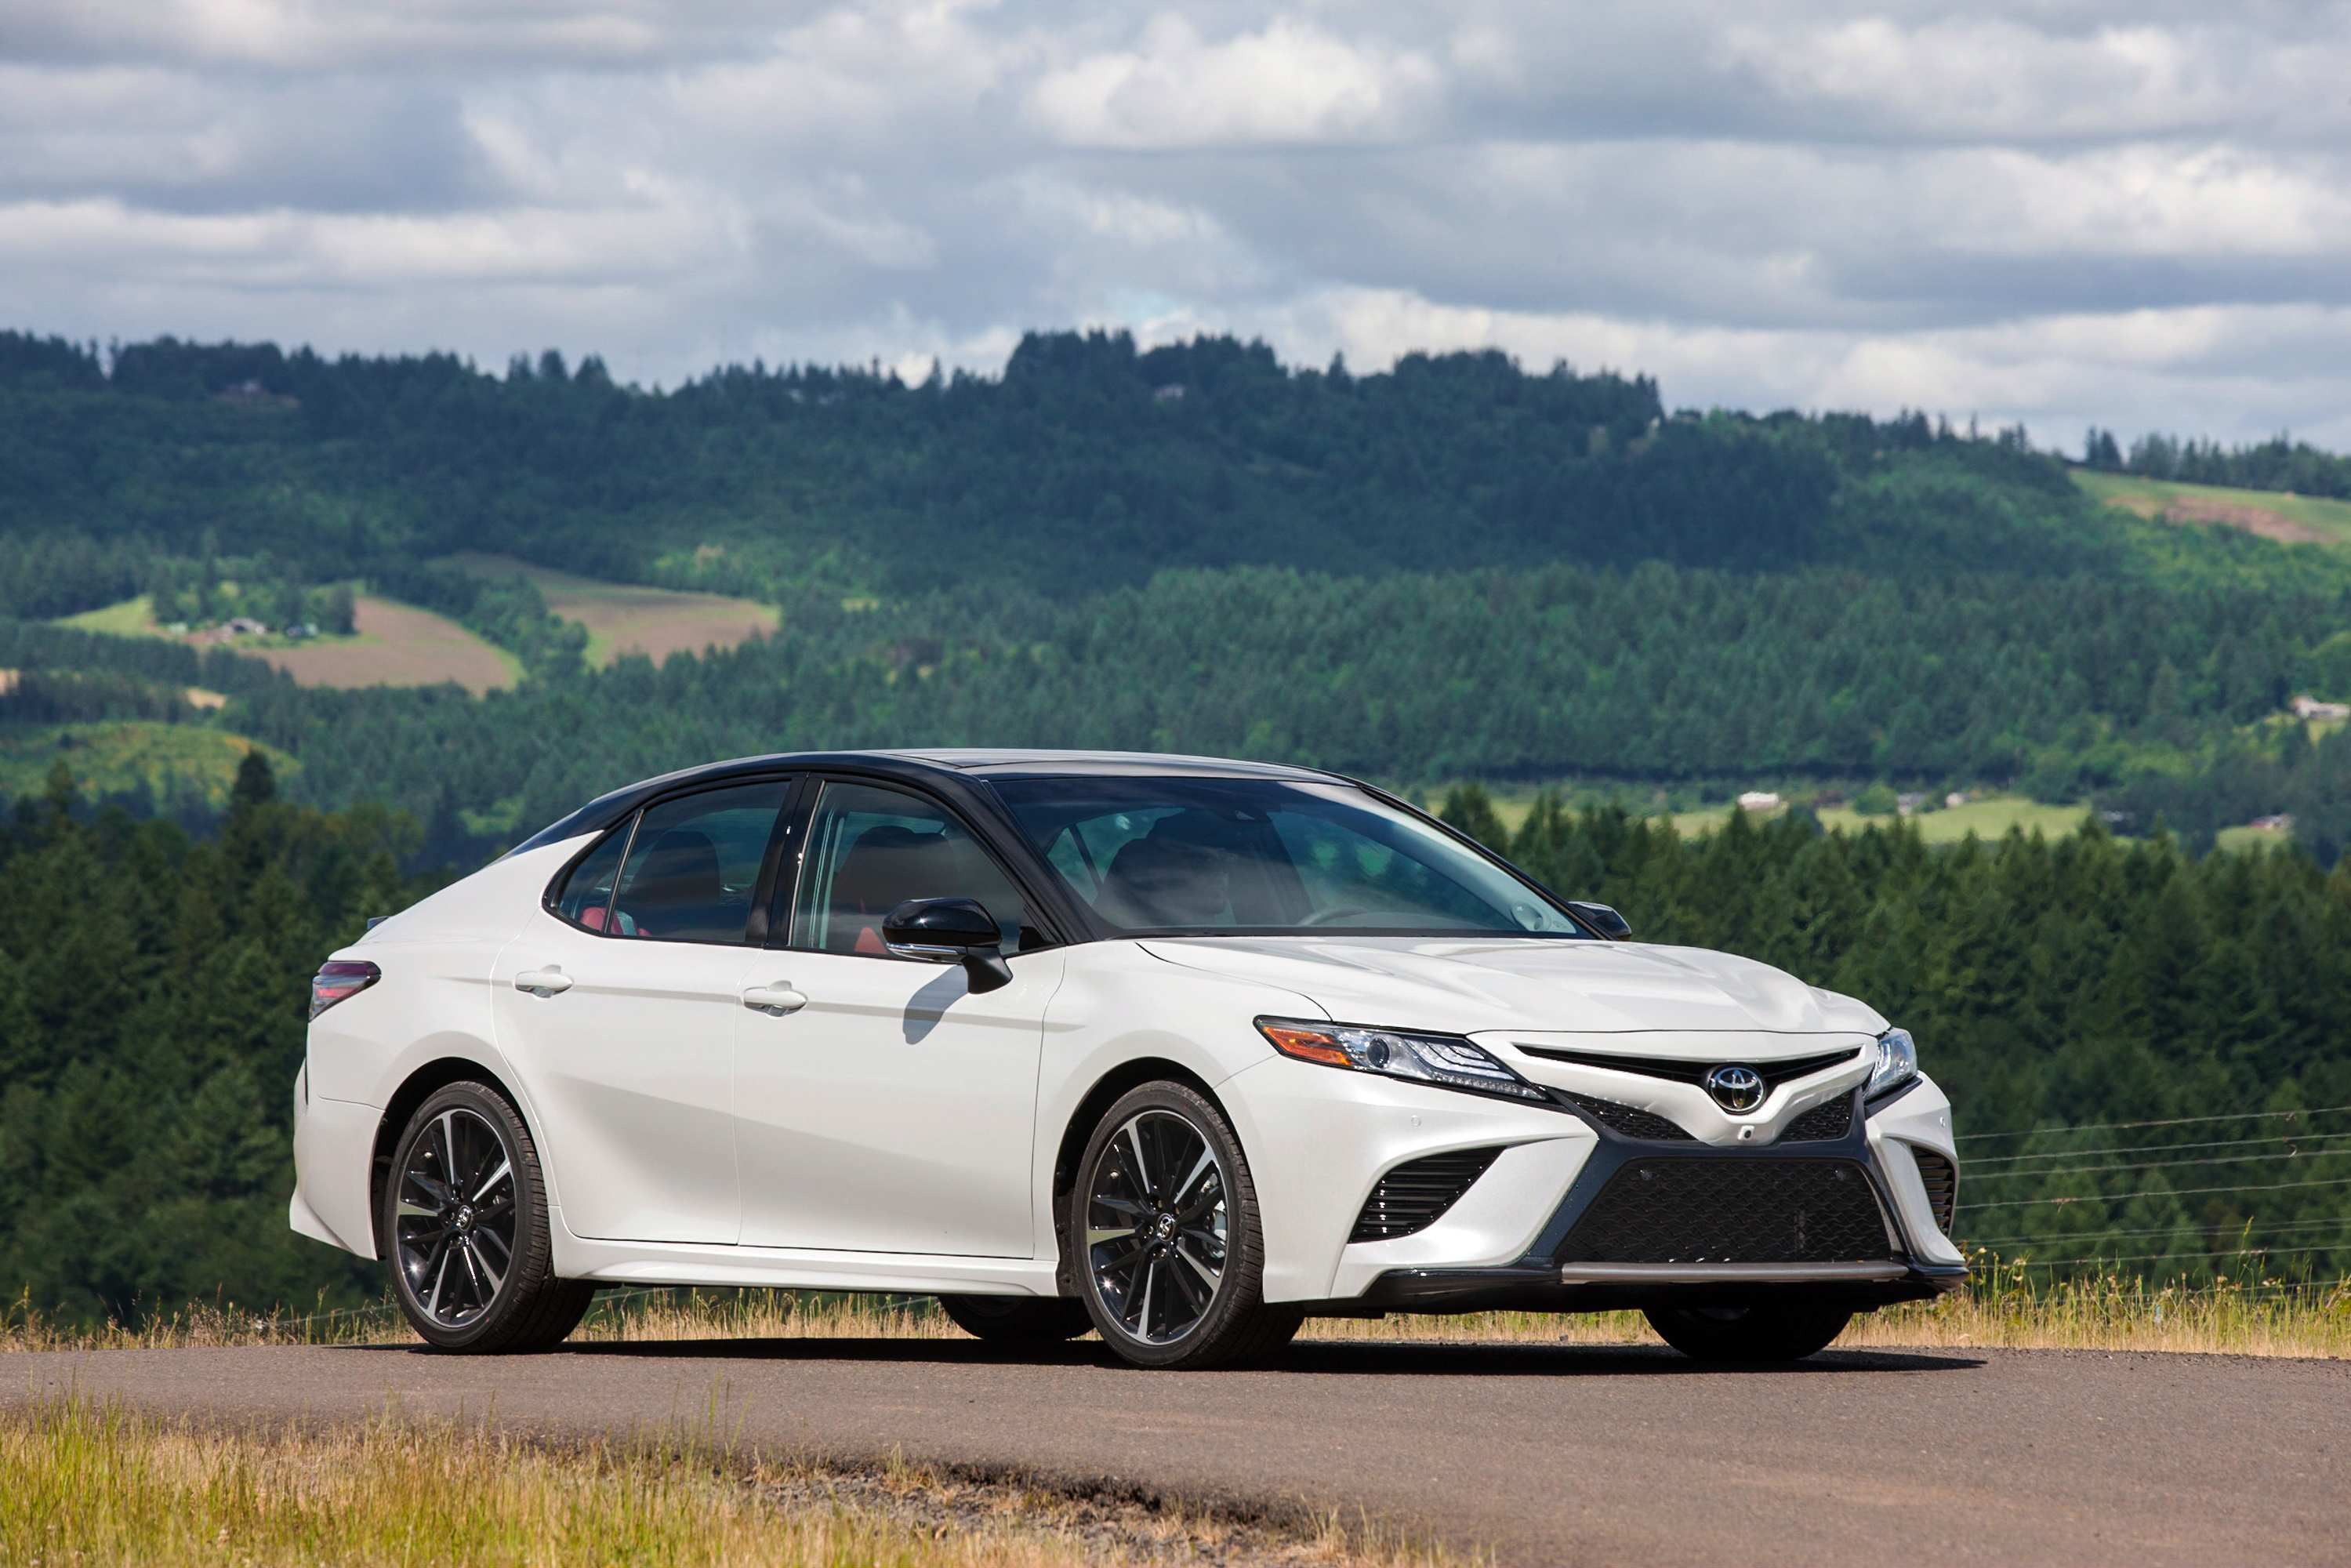 15 All New Toyota Xle 2019 Specs and Review with Toyota Xle 2019